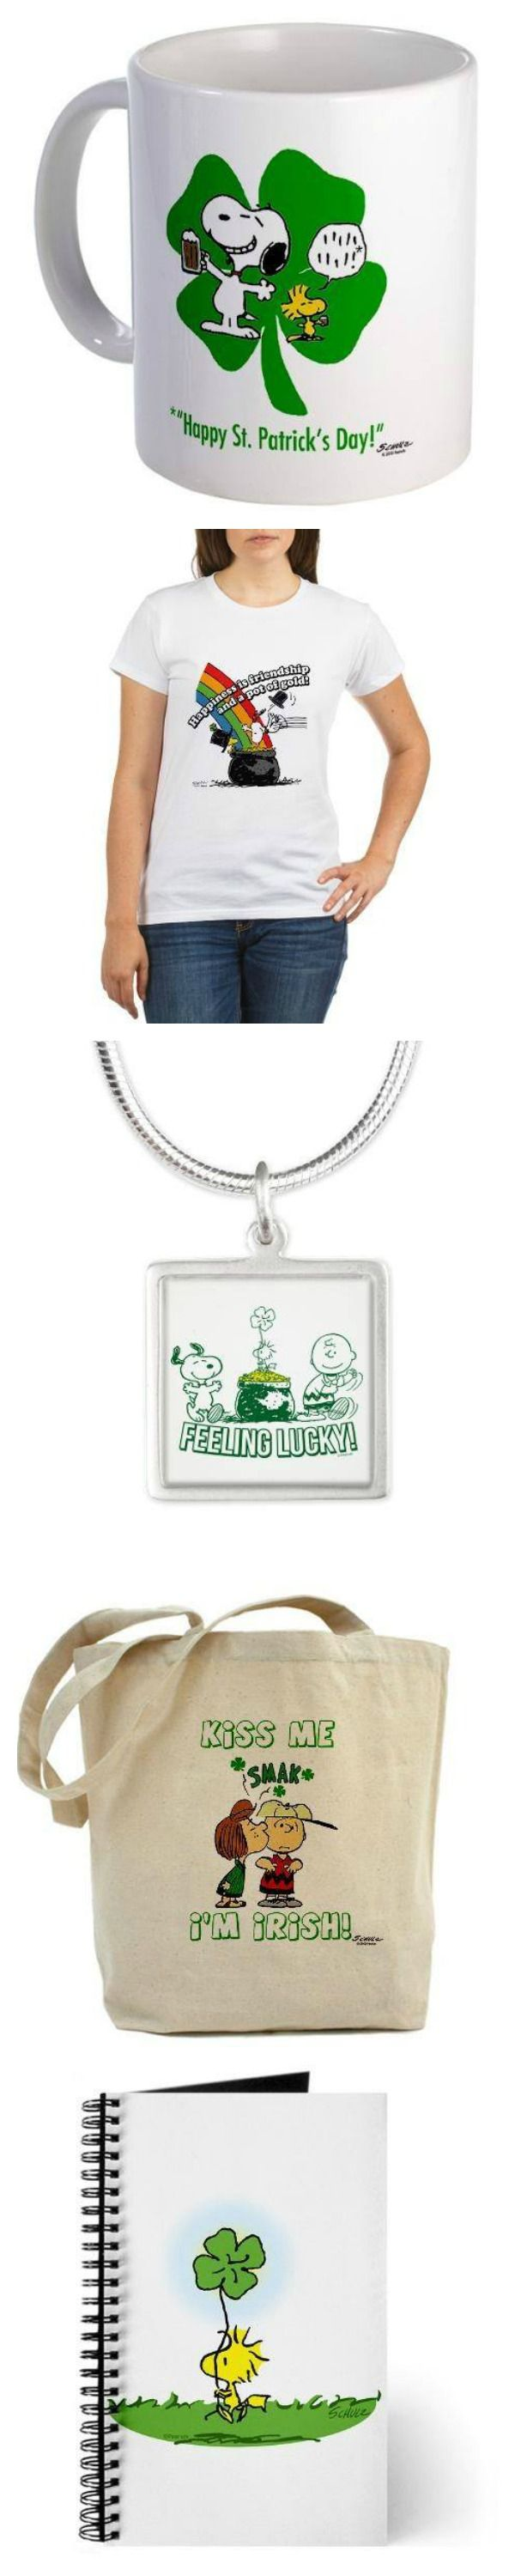 Celebrate St. Patrick's Day with the Peanuts Gang! The Snoopy Store features Snoopy, Charlie Brown, Peppermint Patty and Woodstock to show your luck of Irish. Start shopping at CollectPeanuts.com and help support our site. BONUS! Get free shipping for orders over $40 with code LUCKYME.